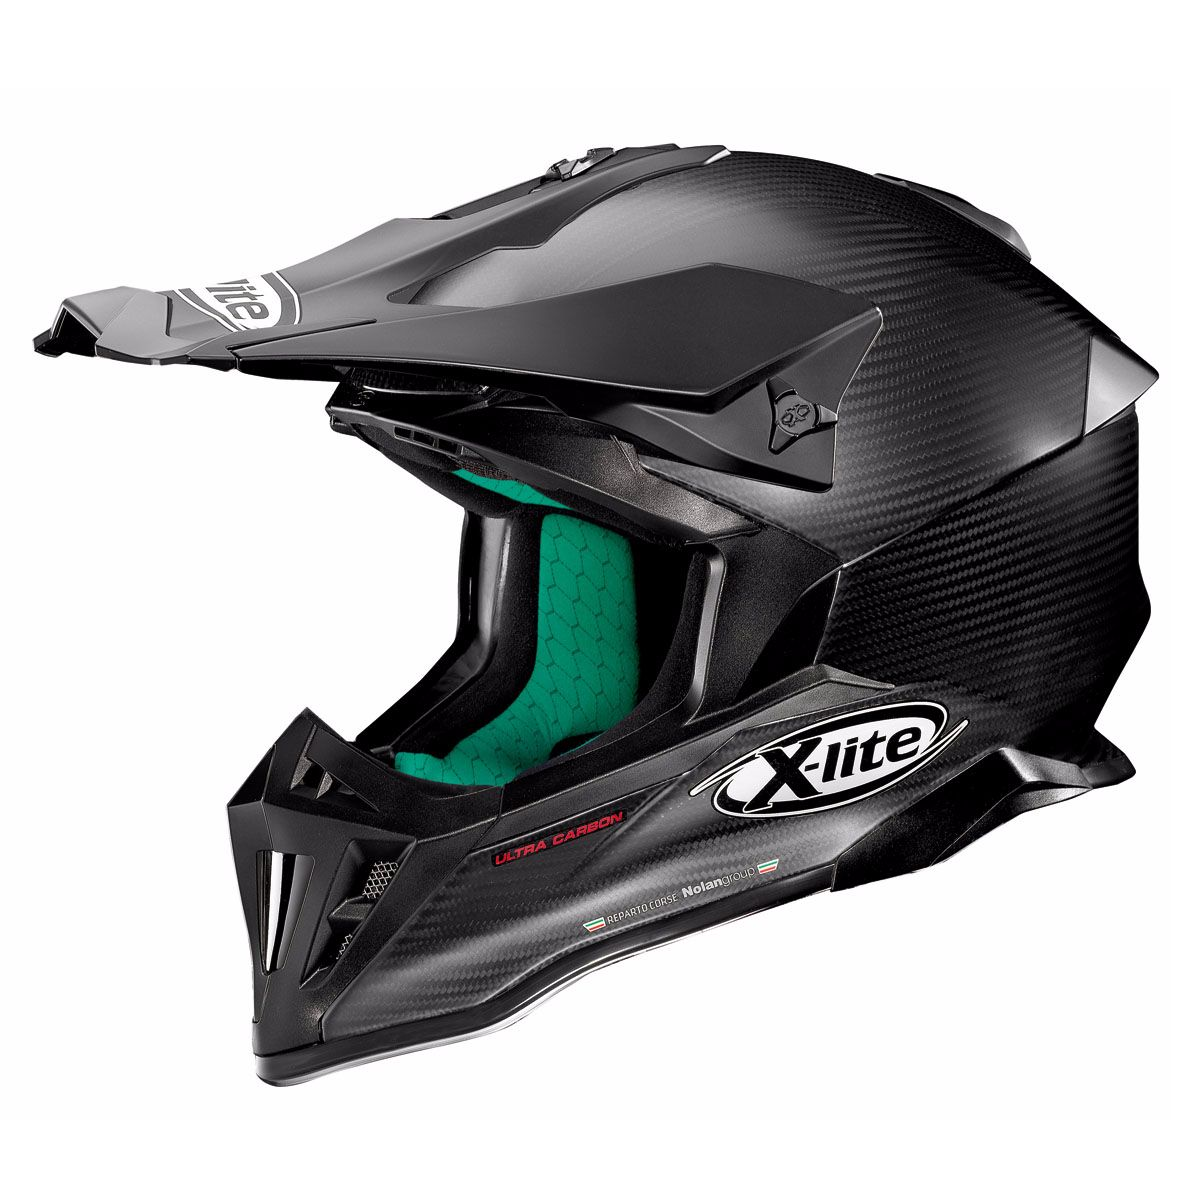 Casque Cross X-lite X-502 Ultra Carbon - Puro Flat Carbon 2